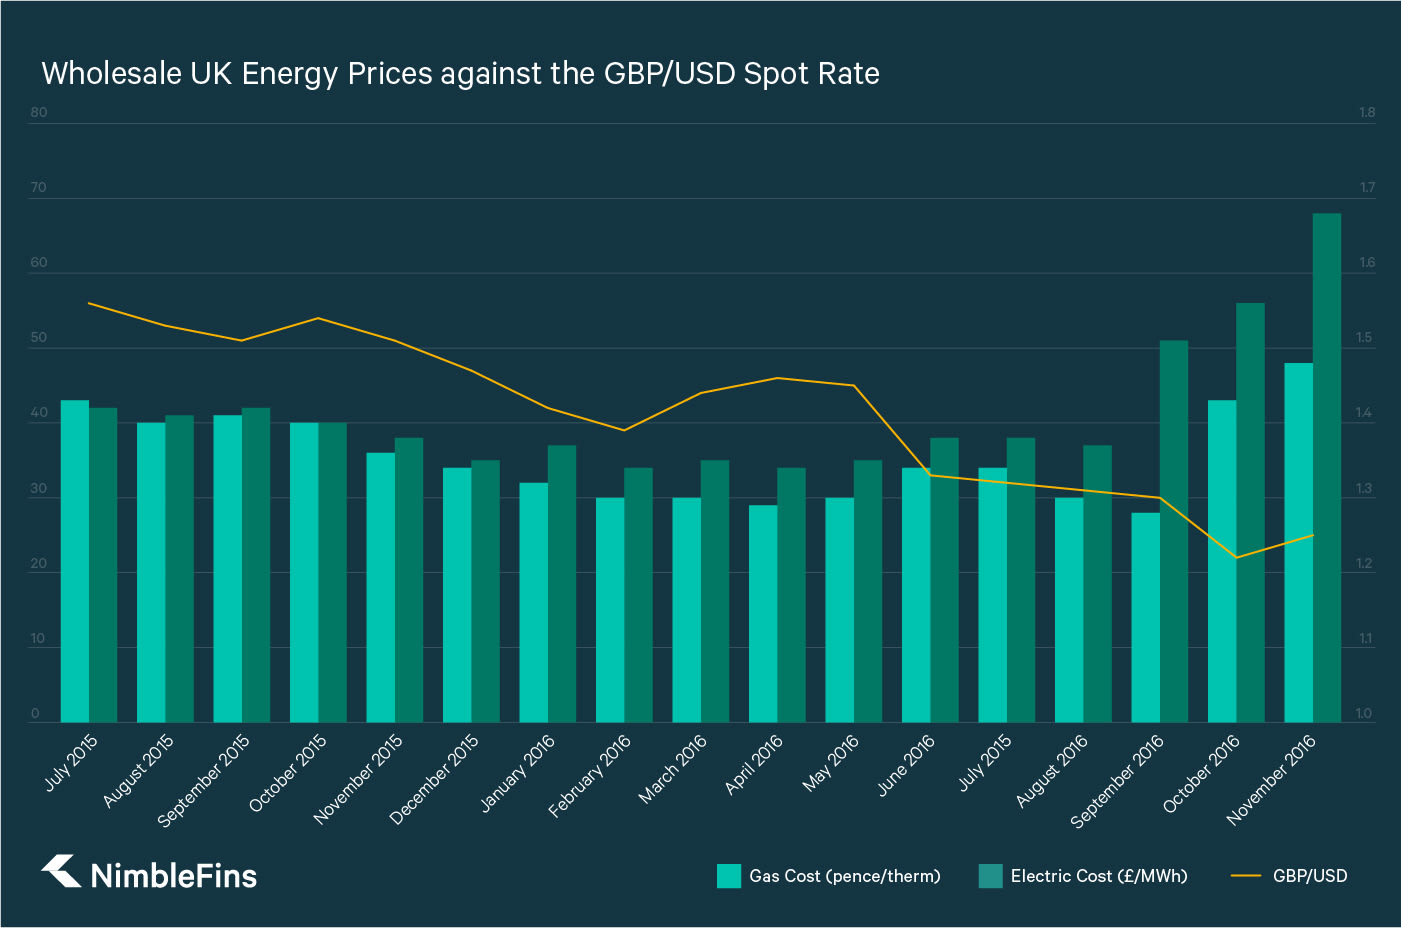 Chart showing how wholesale gas and electric prices in the UK has risen as the GBP has dropped in value